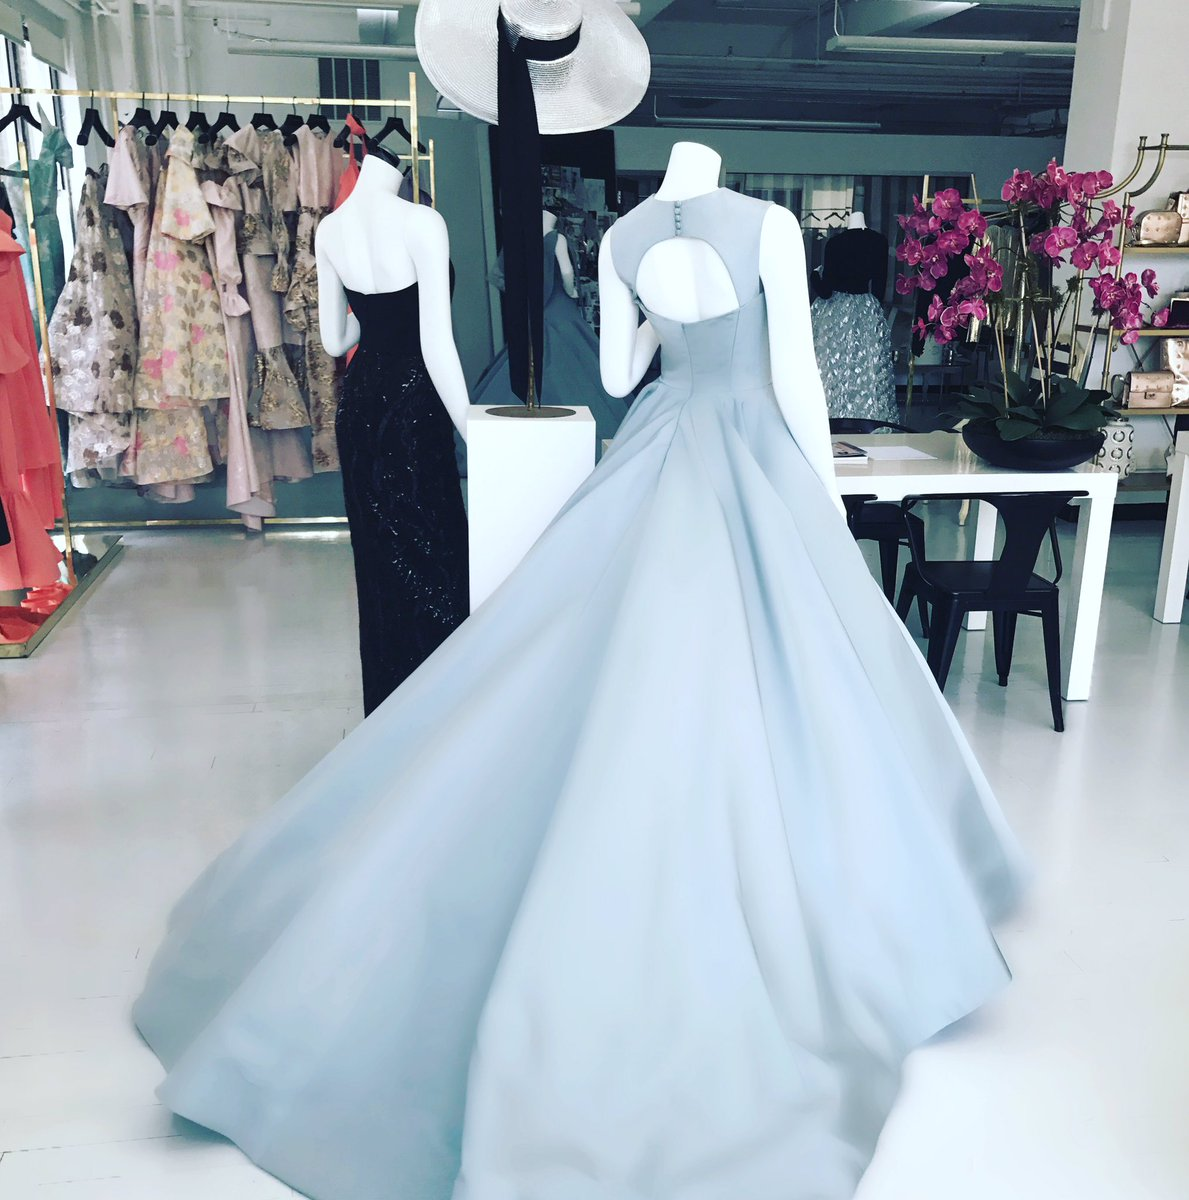 Mint and fresh! #resort2018 on display in the showroom today! #happythursday <br>http://pic.twitter.com/my8yoUyIv3